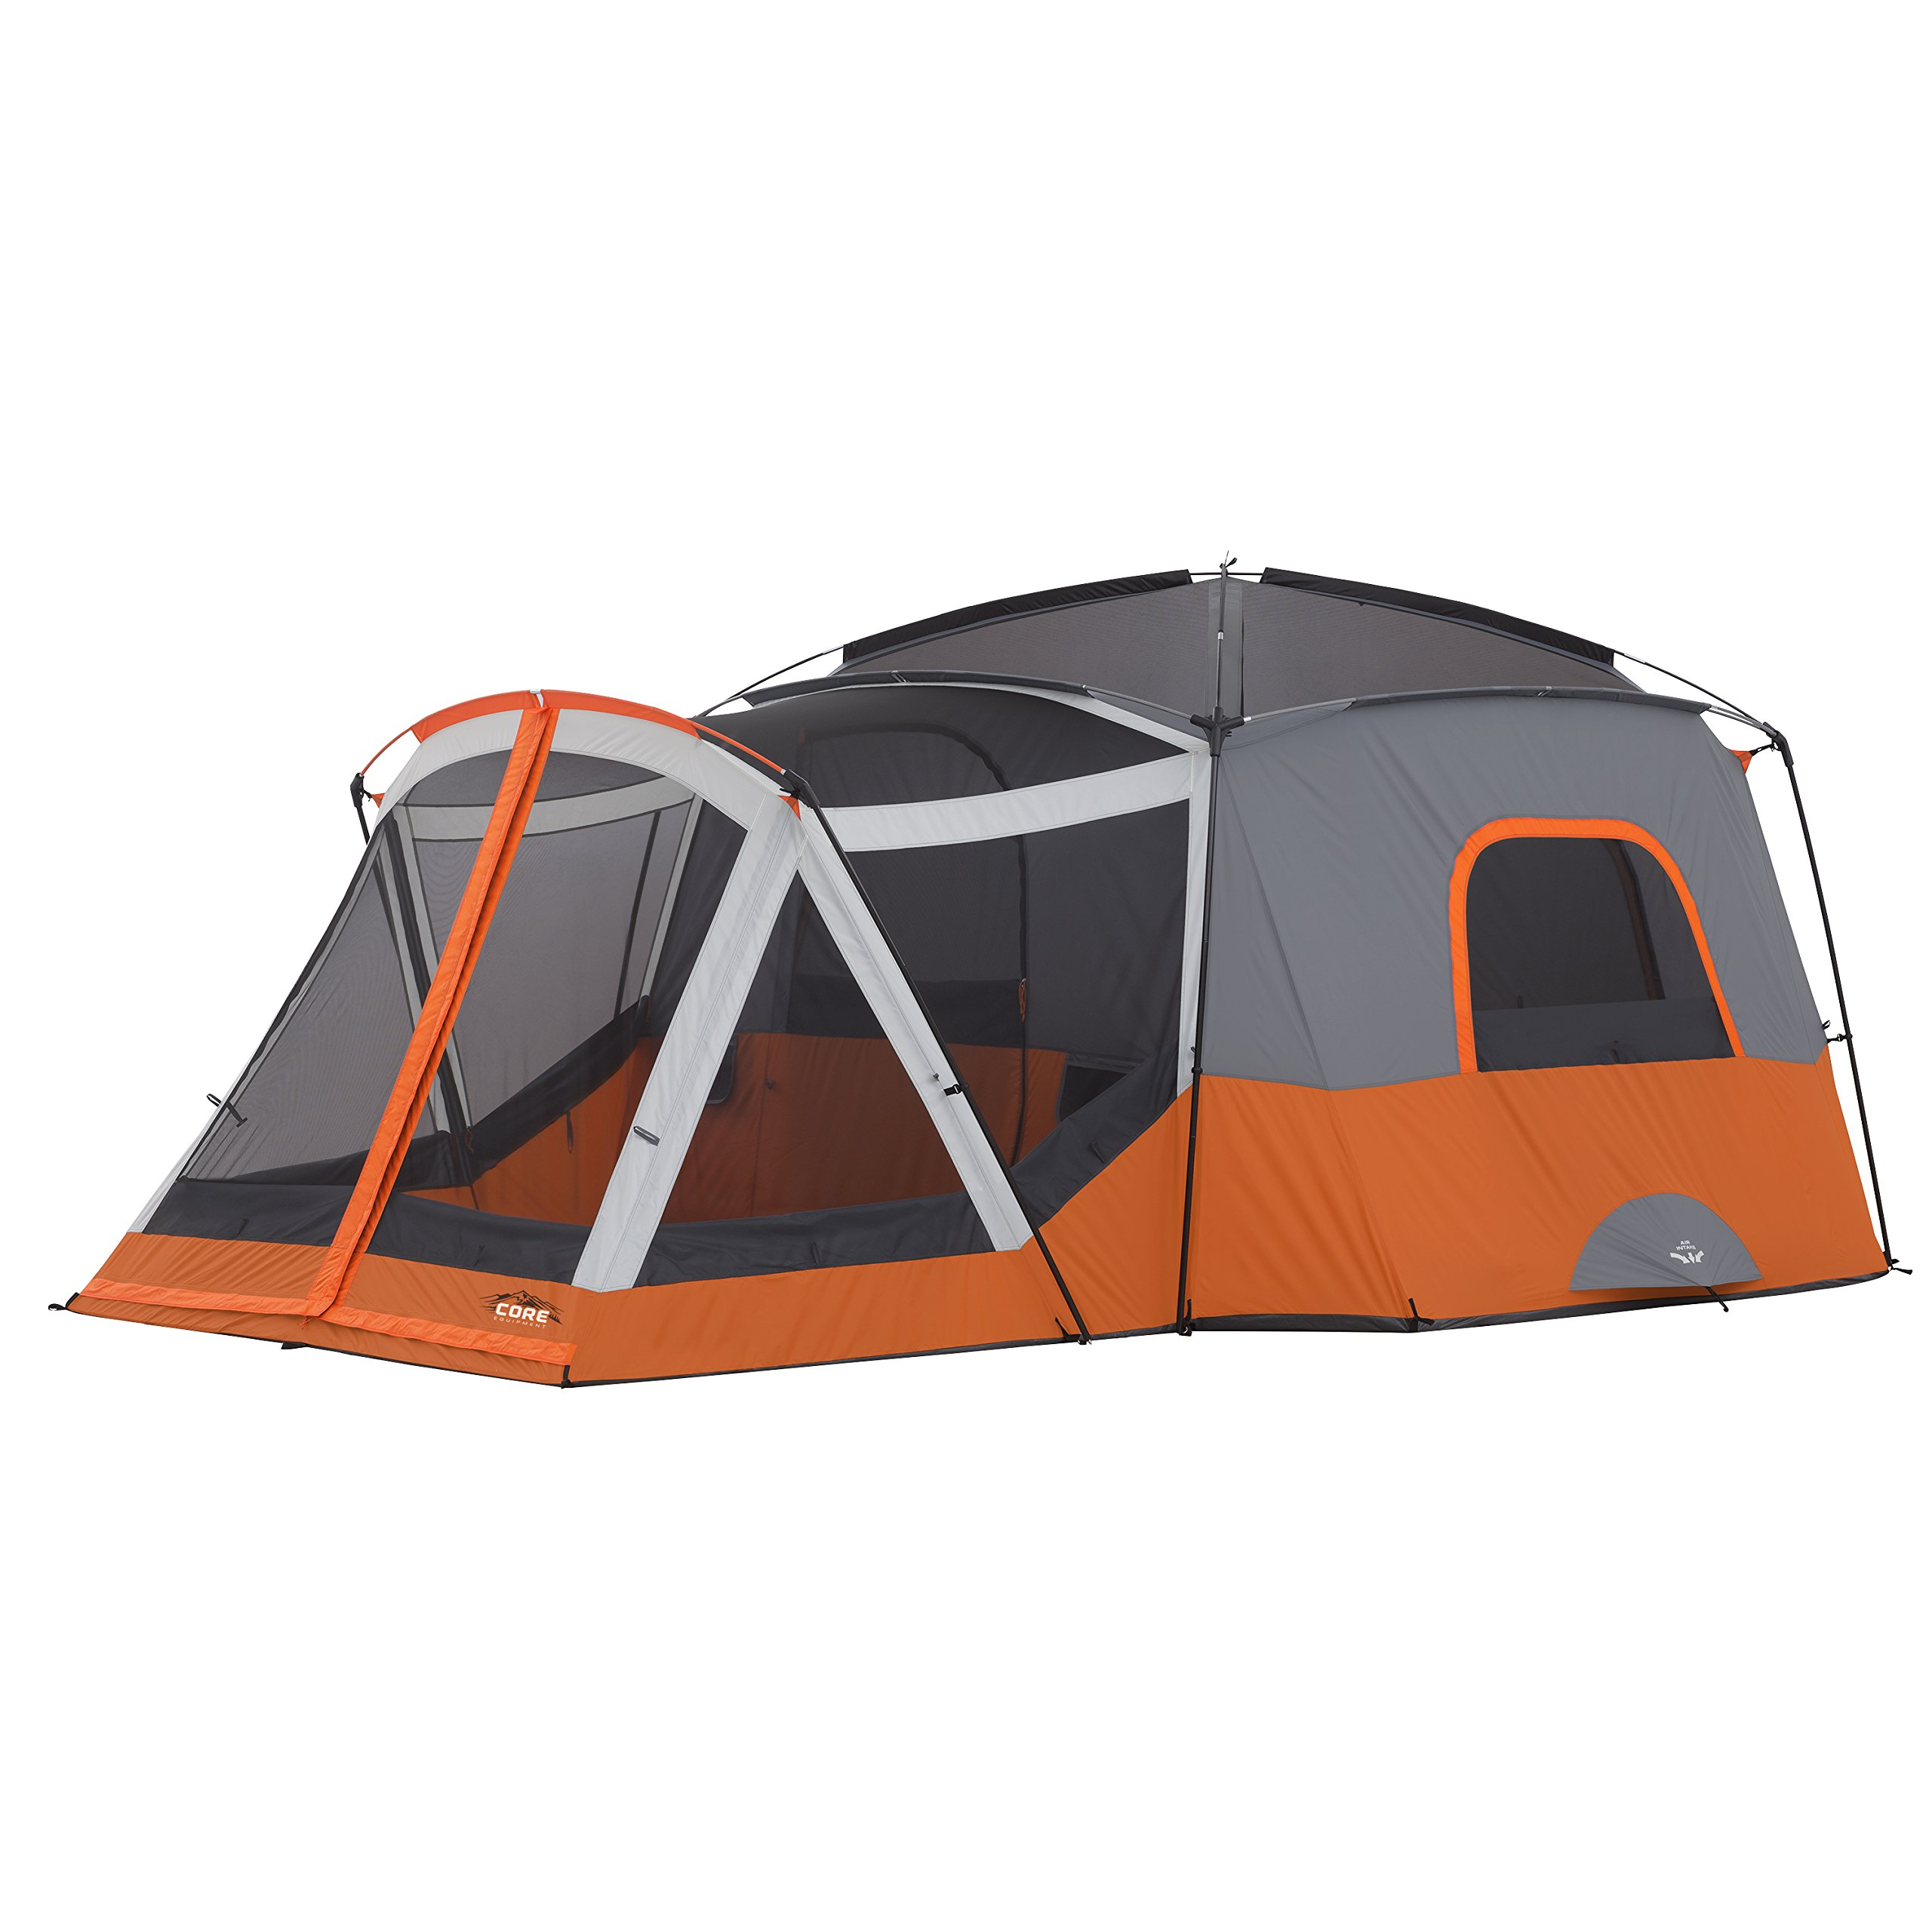 CORE 11 Person Cabin Tent with Screen Room - 17' x 12' by CORE Equipment (Image #2)